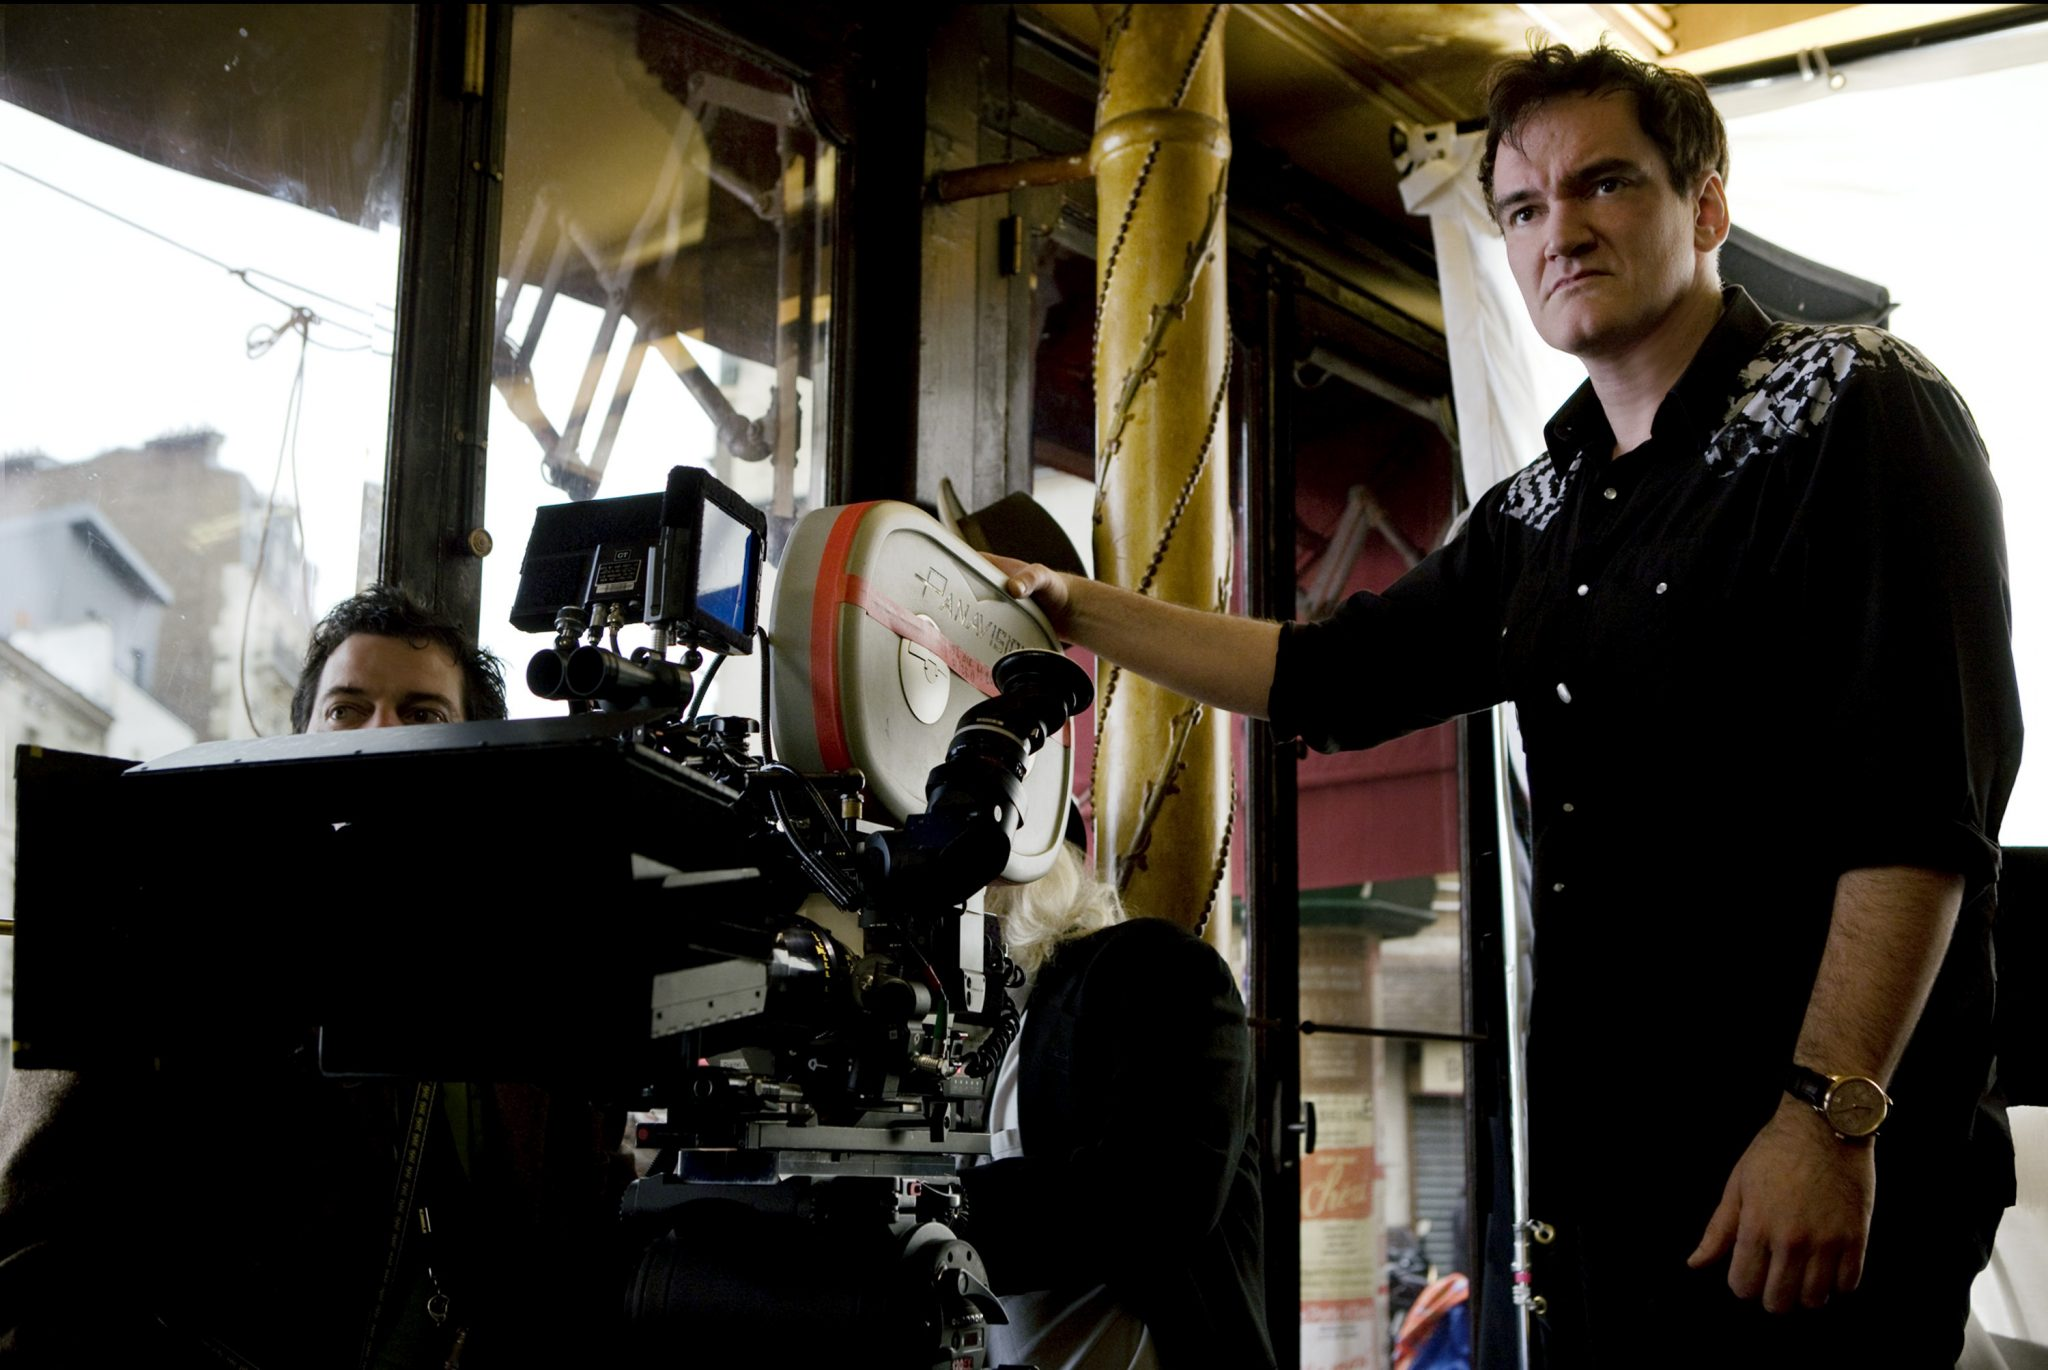 "In this film publicity image released by The Weinstein Co., director Quentin Tarantino is shown on the set of, ""Inglourious Basterds.""  Tarantino was nominated Tuesday, Feb. 2, 2010 for an Oscar for best director for, ""Inglourious Basterds."" The 82nd Academy Awards will be presented on March 7. (AP Photo/The Weinstein Co., Francois Duhamel)"